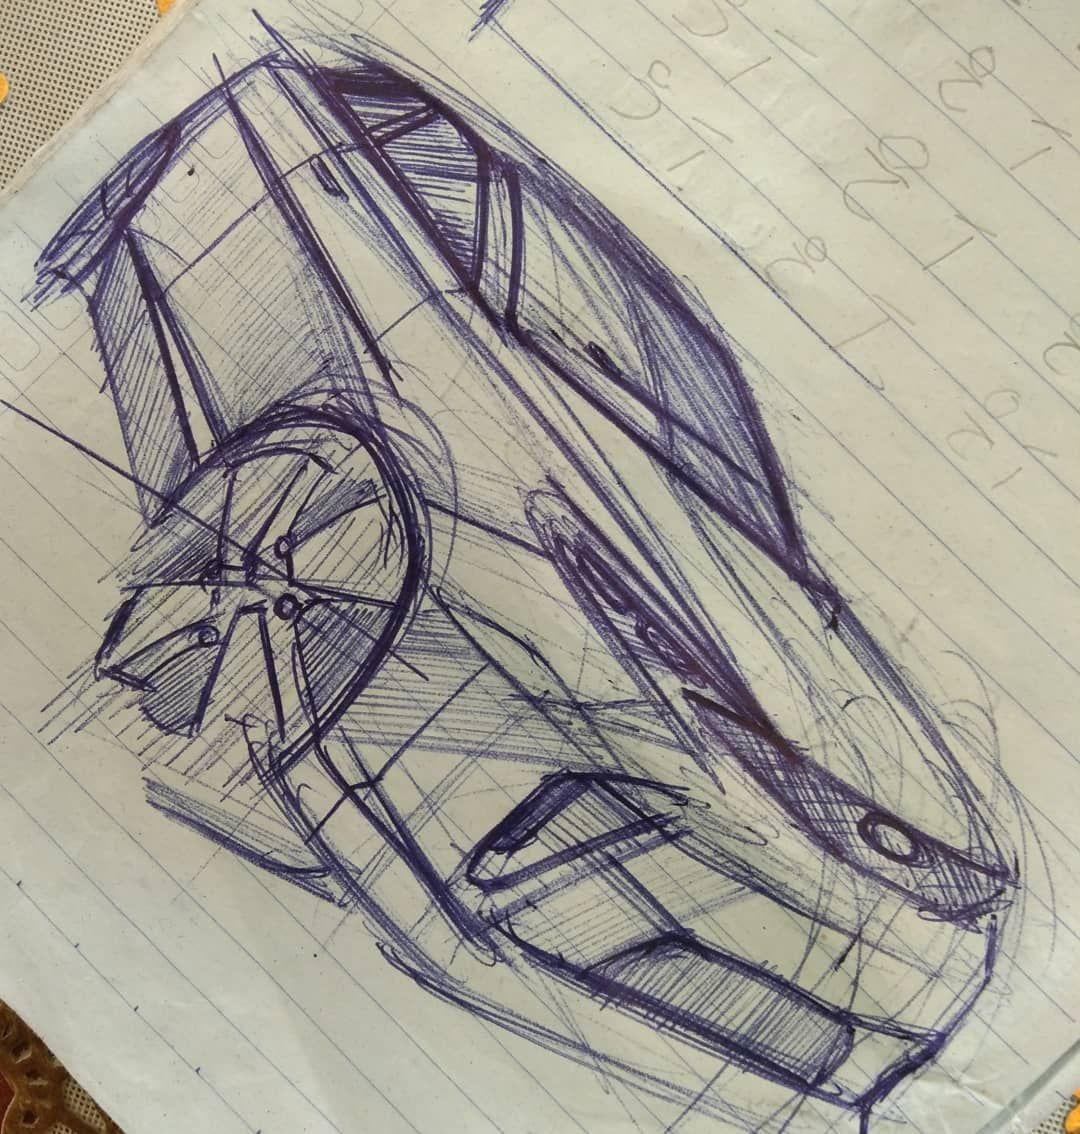 Sketsa kilat dibuku tulis #cardesign #car #design #carsketch #sketch #ferrari #laferrari #hypercar #supercar #transportation #art #design #car #travel #artist #cars #artwork #designer #love #vehicle #drawing #interiordesign #fitness #transportationdesign #instaart #designs #card #ferrarilaferrari Sketsa kilat dibuku tulis #cardesign #car #design #carsketch #sketch #ferrari #laferrari #hypercar #supercar #transportation #art #design #car #travel #artist #cars #artwork #designer #love #vehicle #dr #ferrarilaferrari